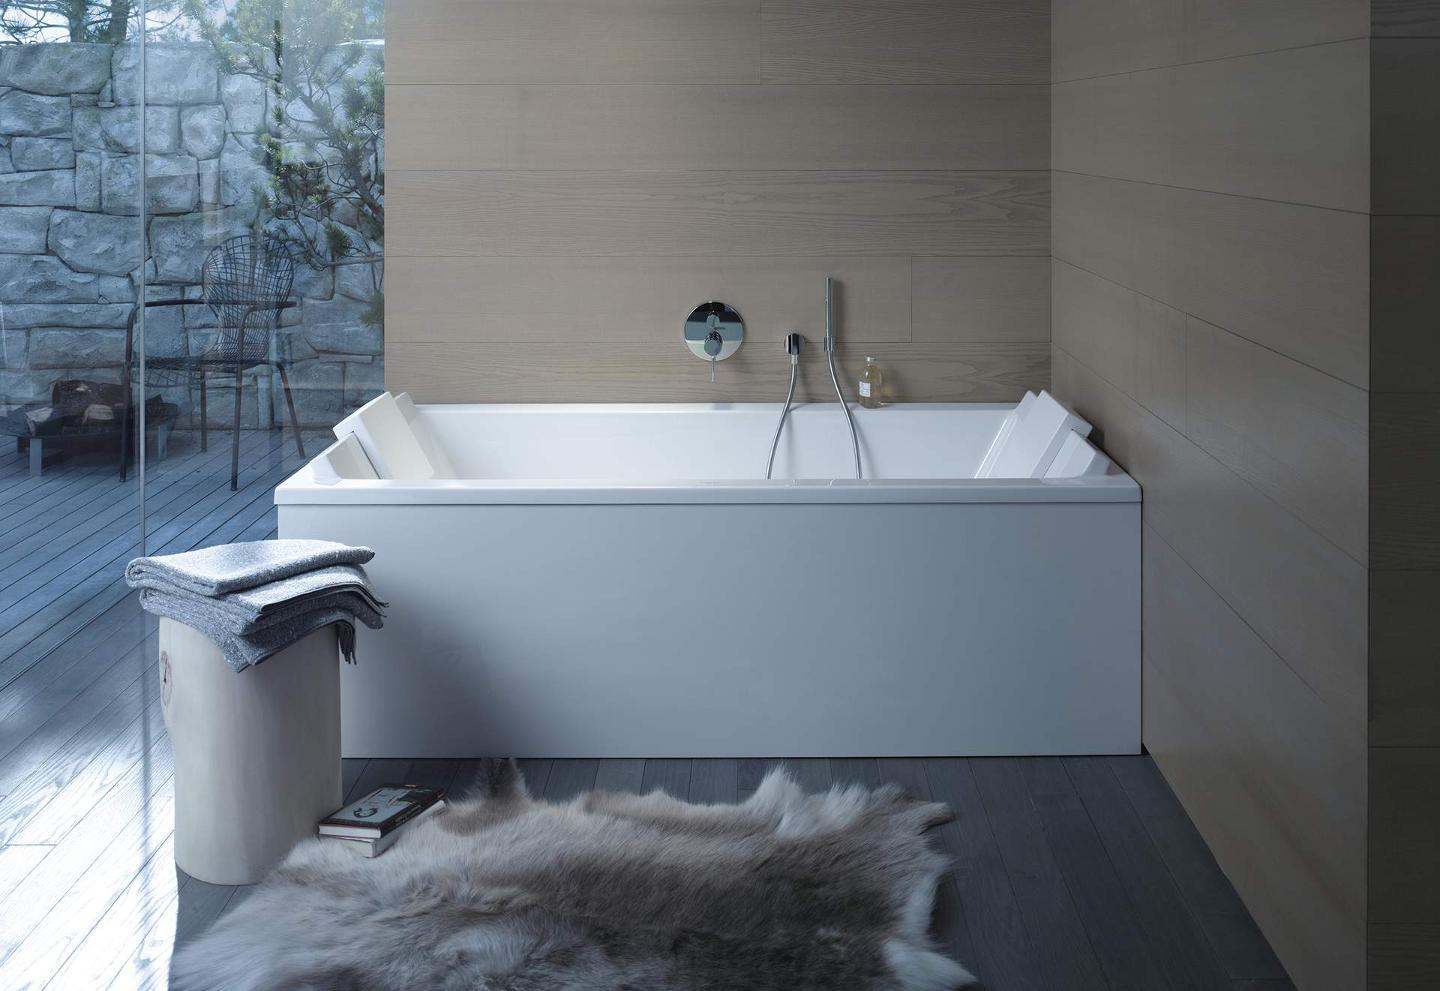 Duravit wellness bathrooms - Wellness at home | Duravit